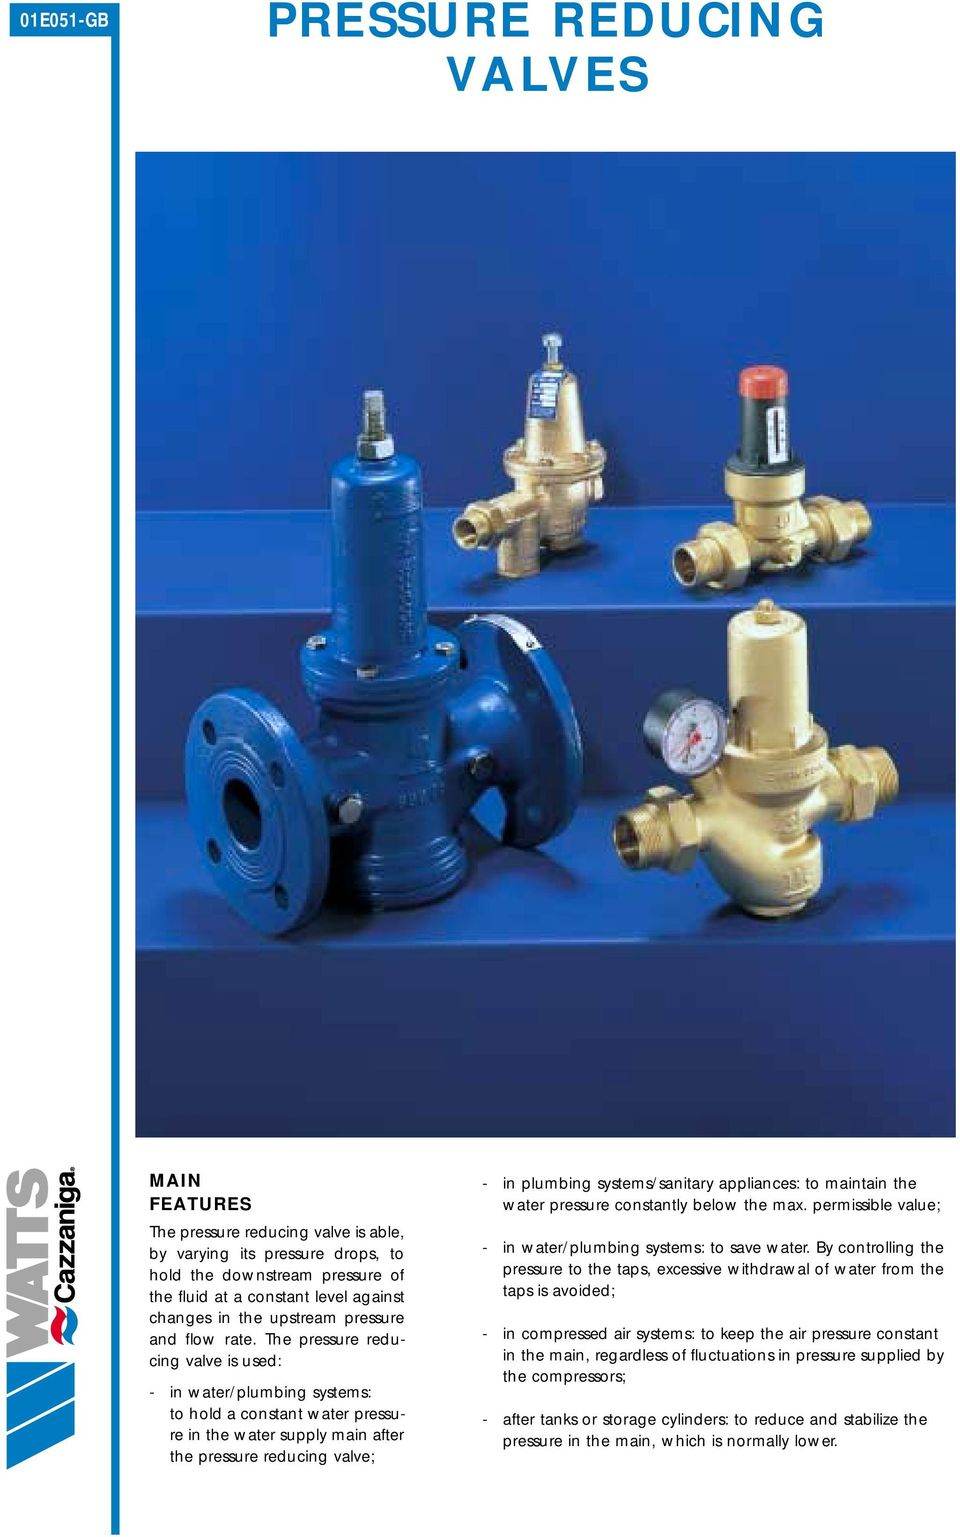 The pressure reducing valve is used: - in water/plumbing systems: to hold a constant water pressure in the water supply main after the pressure reducing valve; - in plumbing systems/sanitary